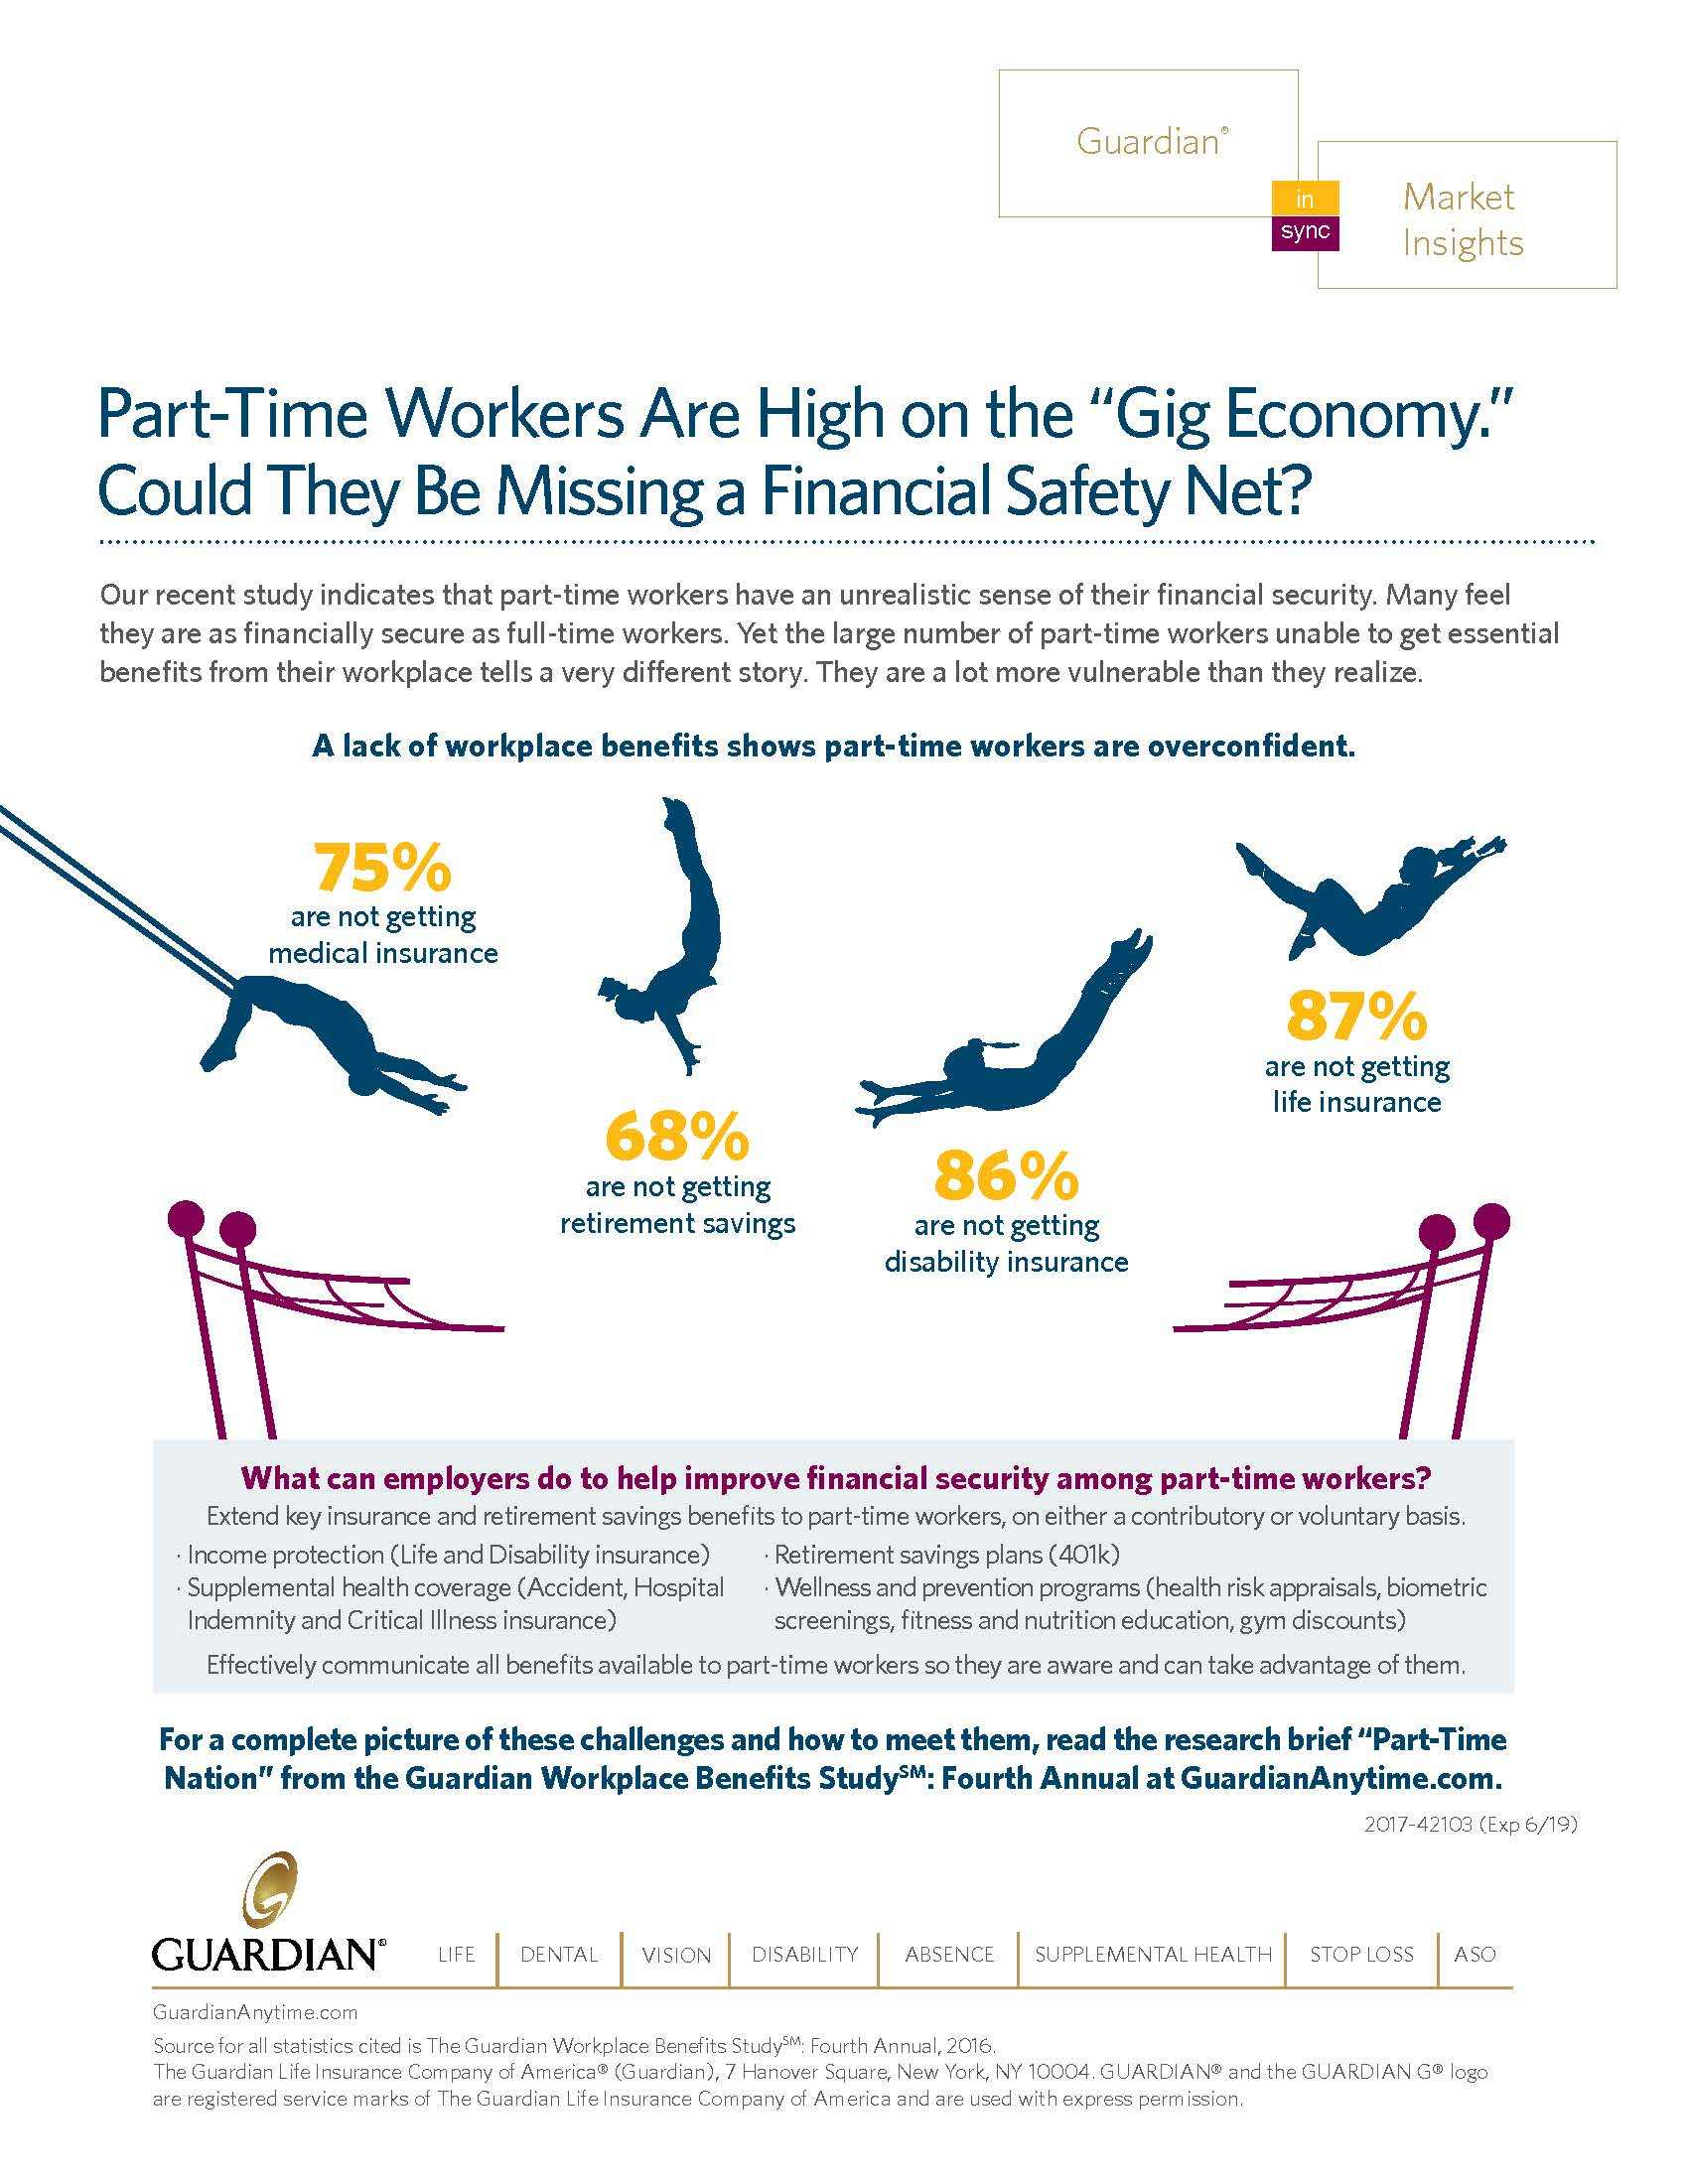 Part-time workers may be more financially vulnerable than they realize by missing out on important workplace benefits. (Graphic: Business Wire)